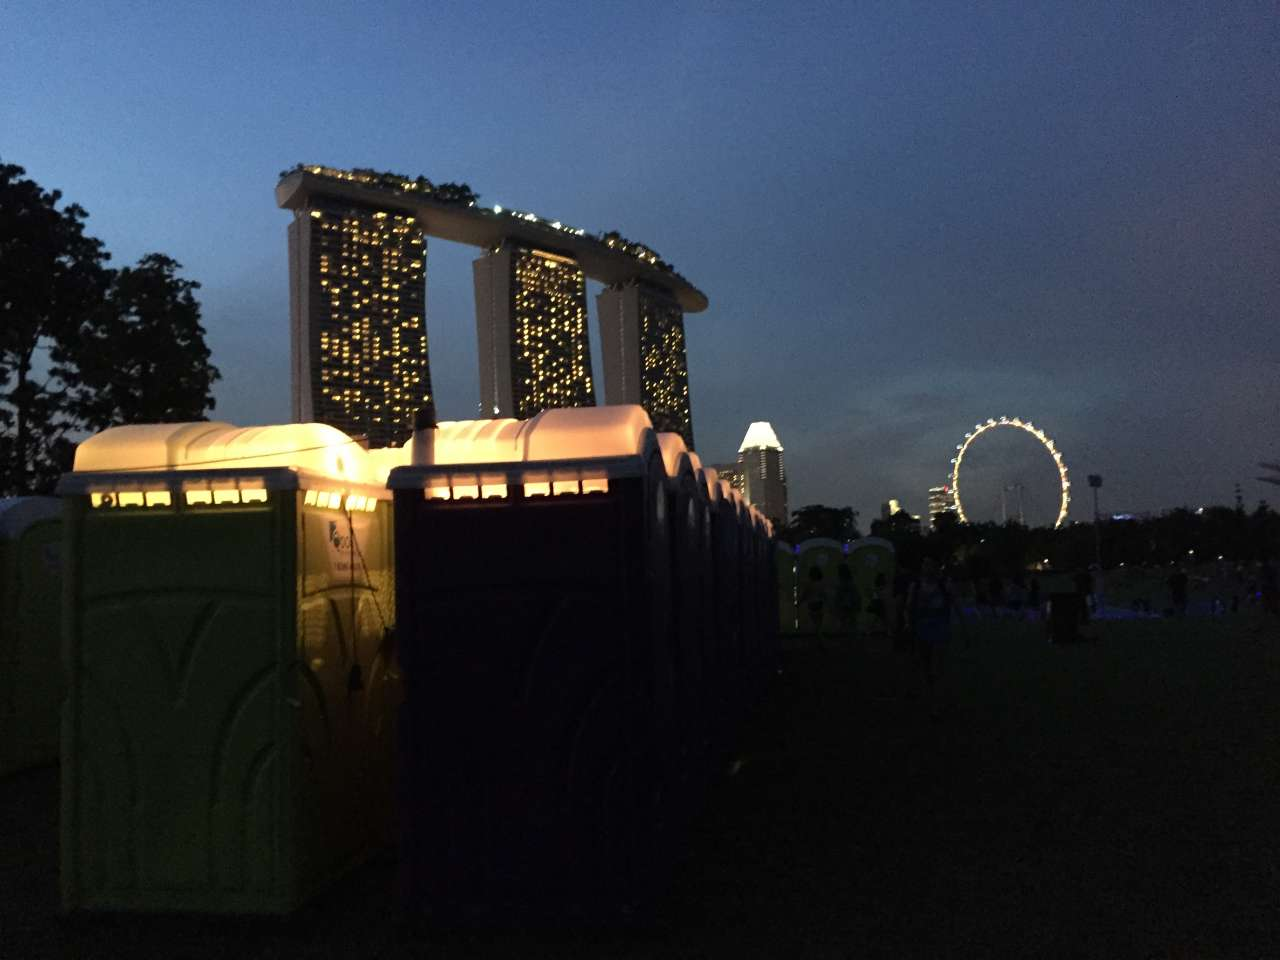 Qool Enviro portable toilet in i am hardwell singapore 2015